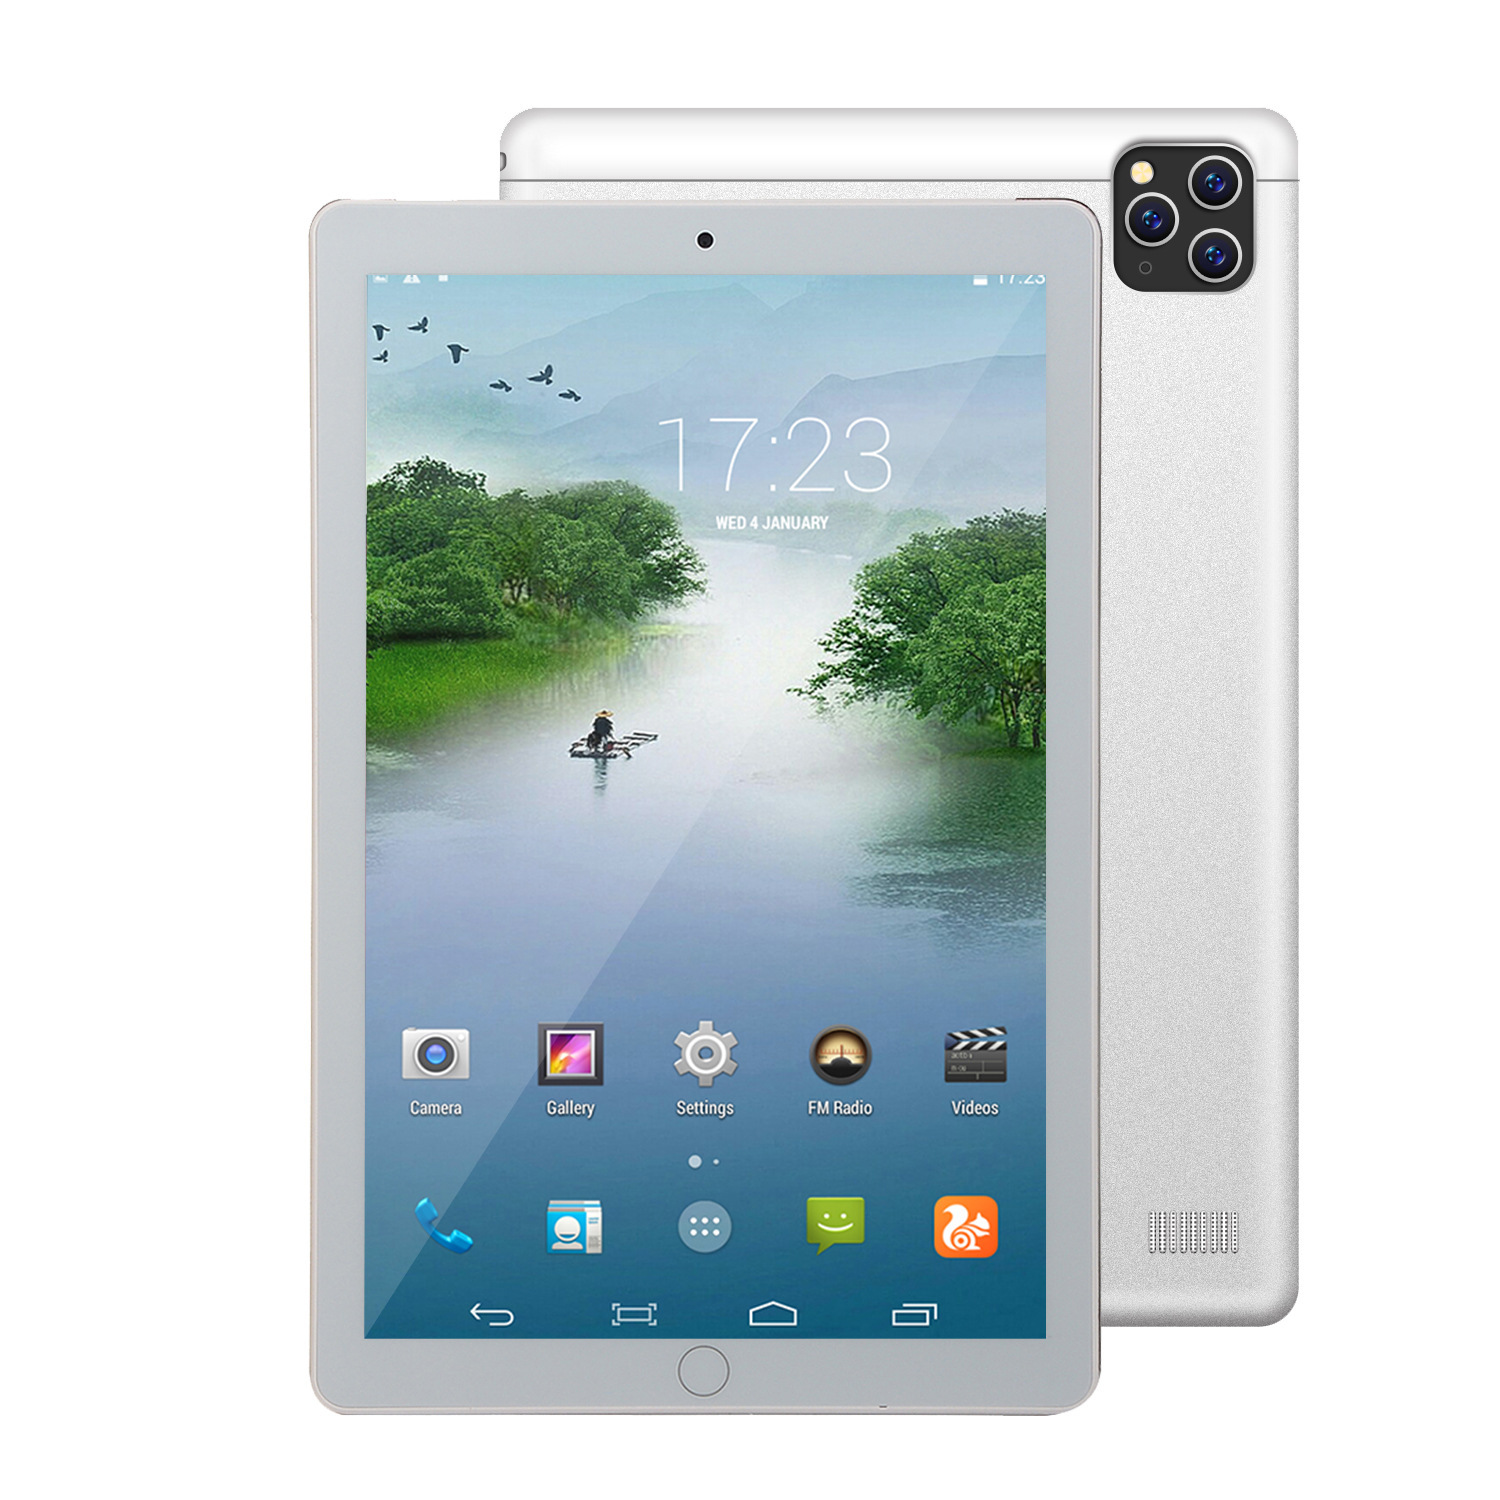 Cheapest 10 Inch Car Android Tablet Phone 3g Quad Core Gaming Computer Laptop Kids Educational Tablet Pc Buy Cheapest 10 Inch Car Android Tablet Phone Gaming Computer Laptop Notebook Kids Educational Tablet Pc